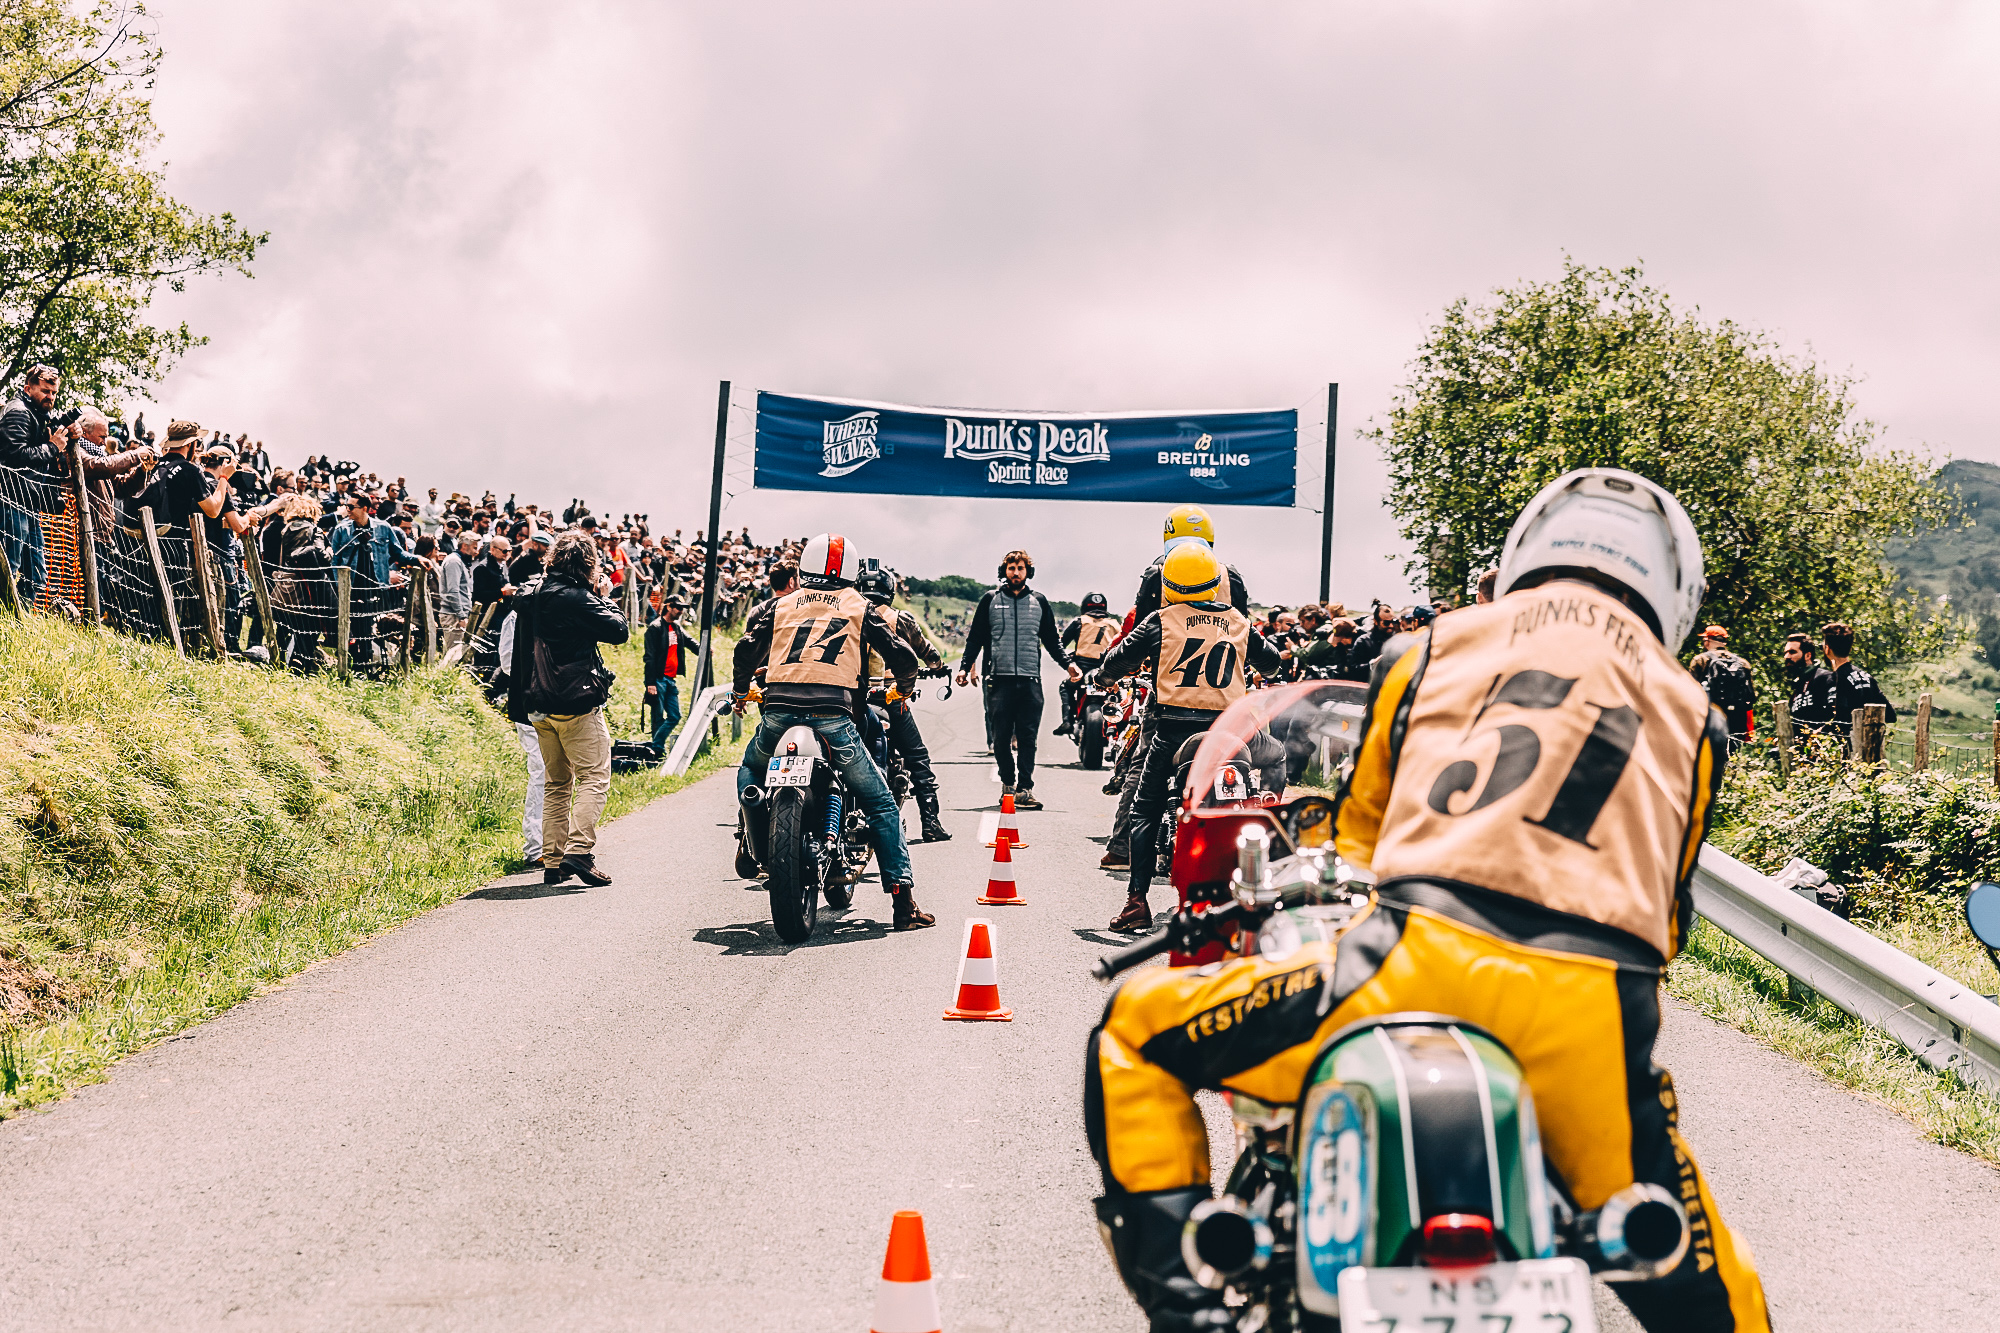 Wheels and Waves : The inevitable event of retro motorcycles